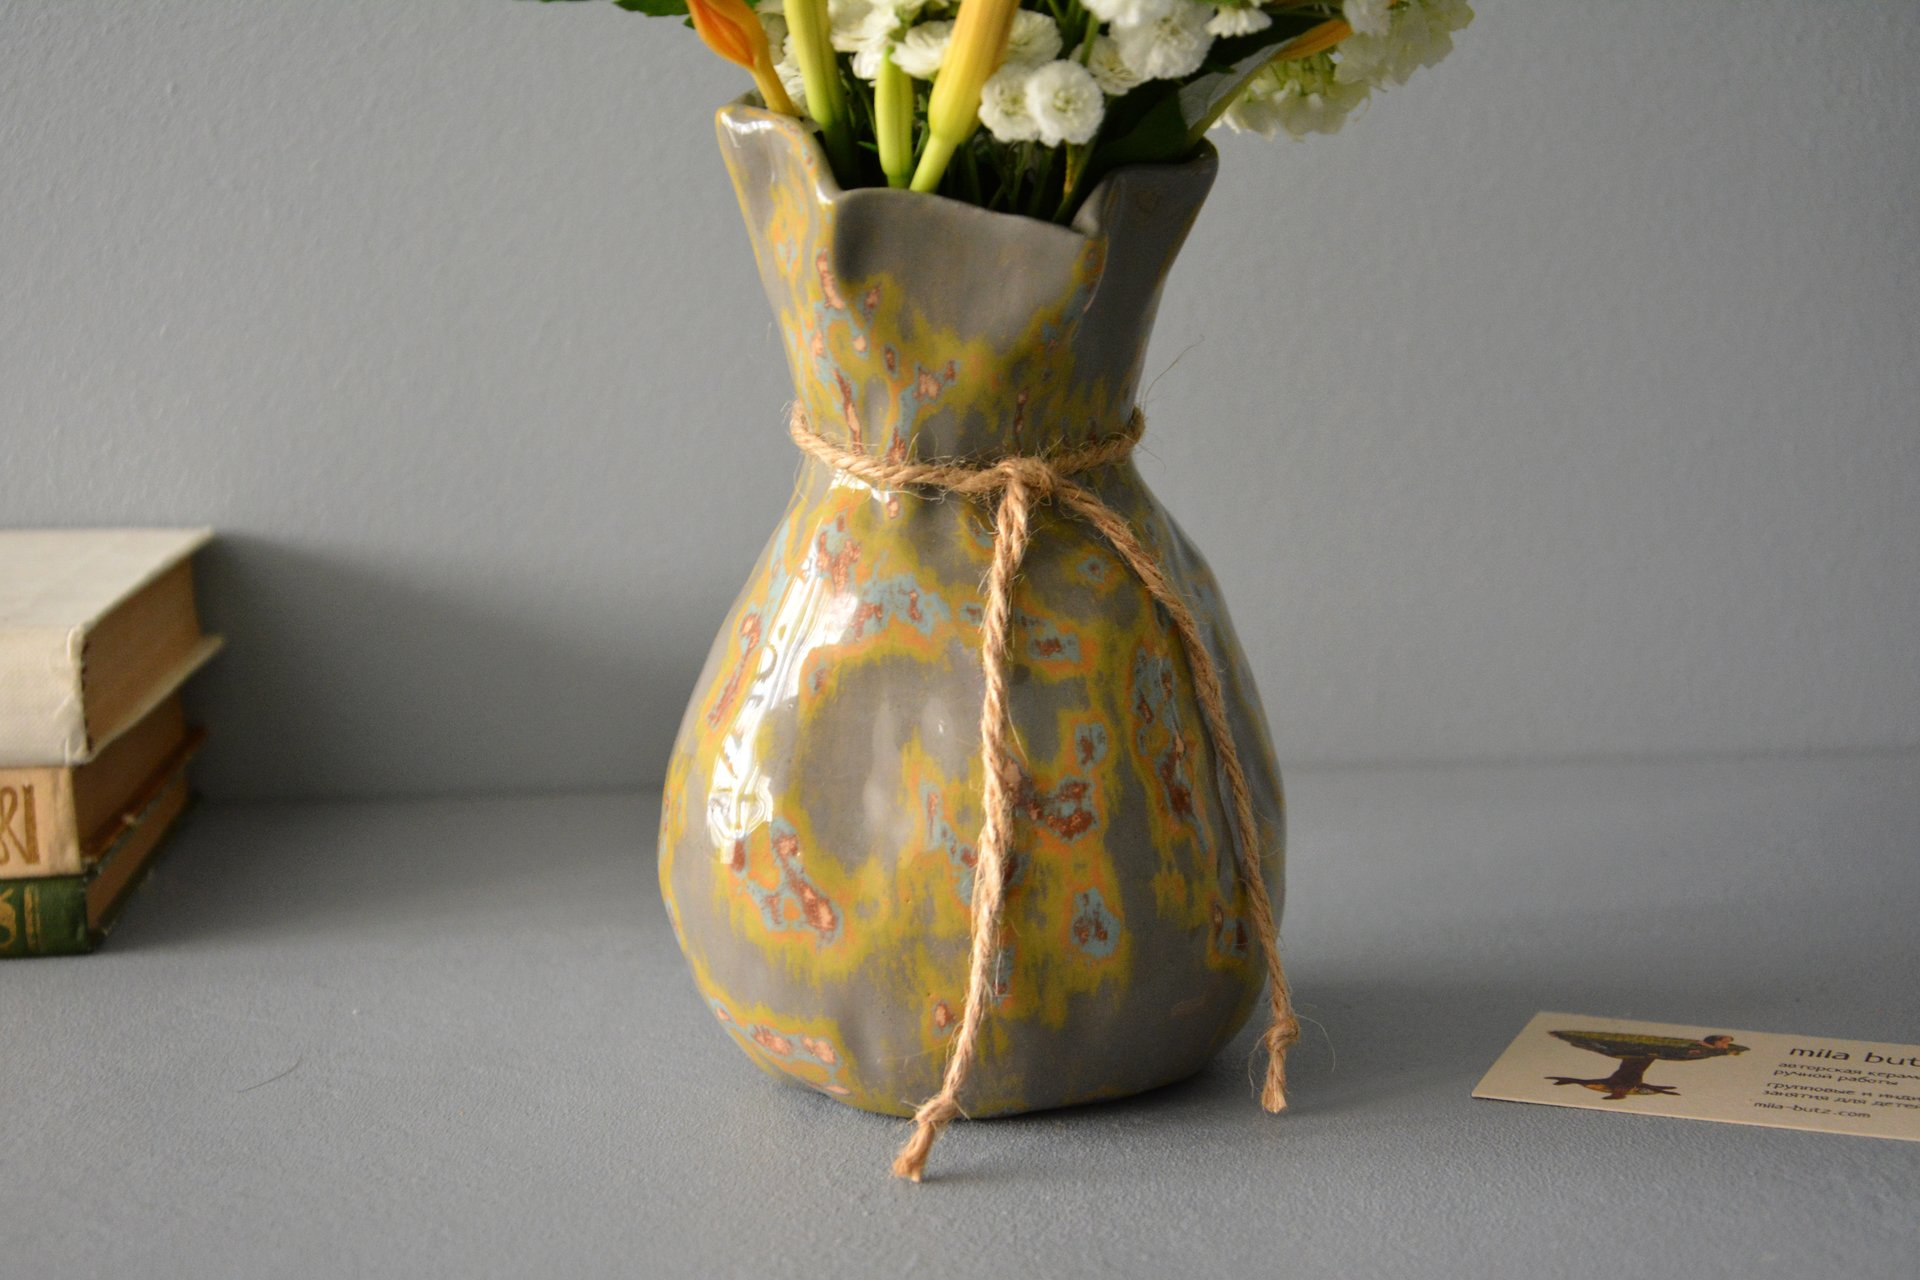 Decorative ceramic vase — Shabby Pouch, height - 17 cm, color - gray, photo 6 of 6. 1048.